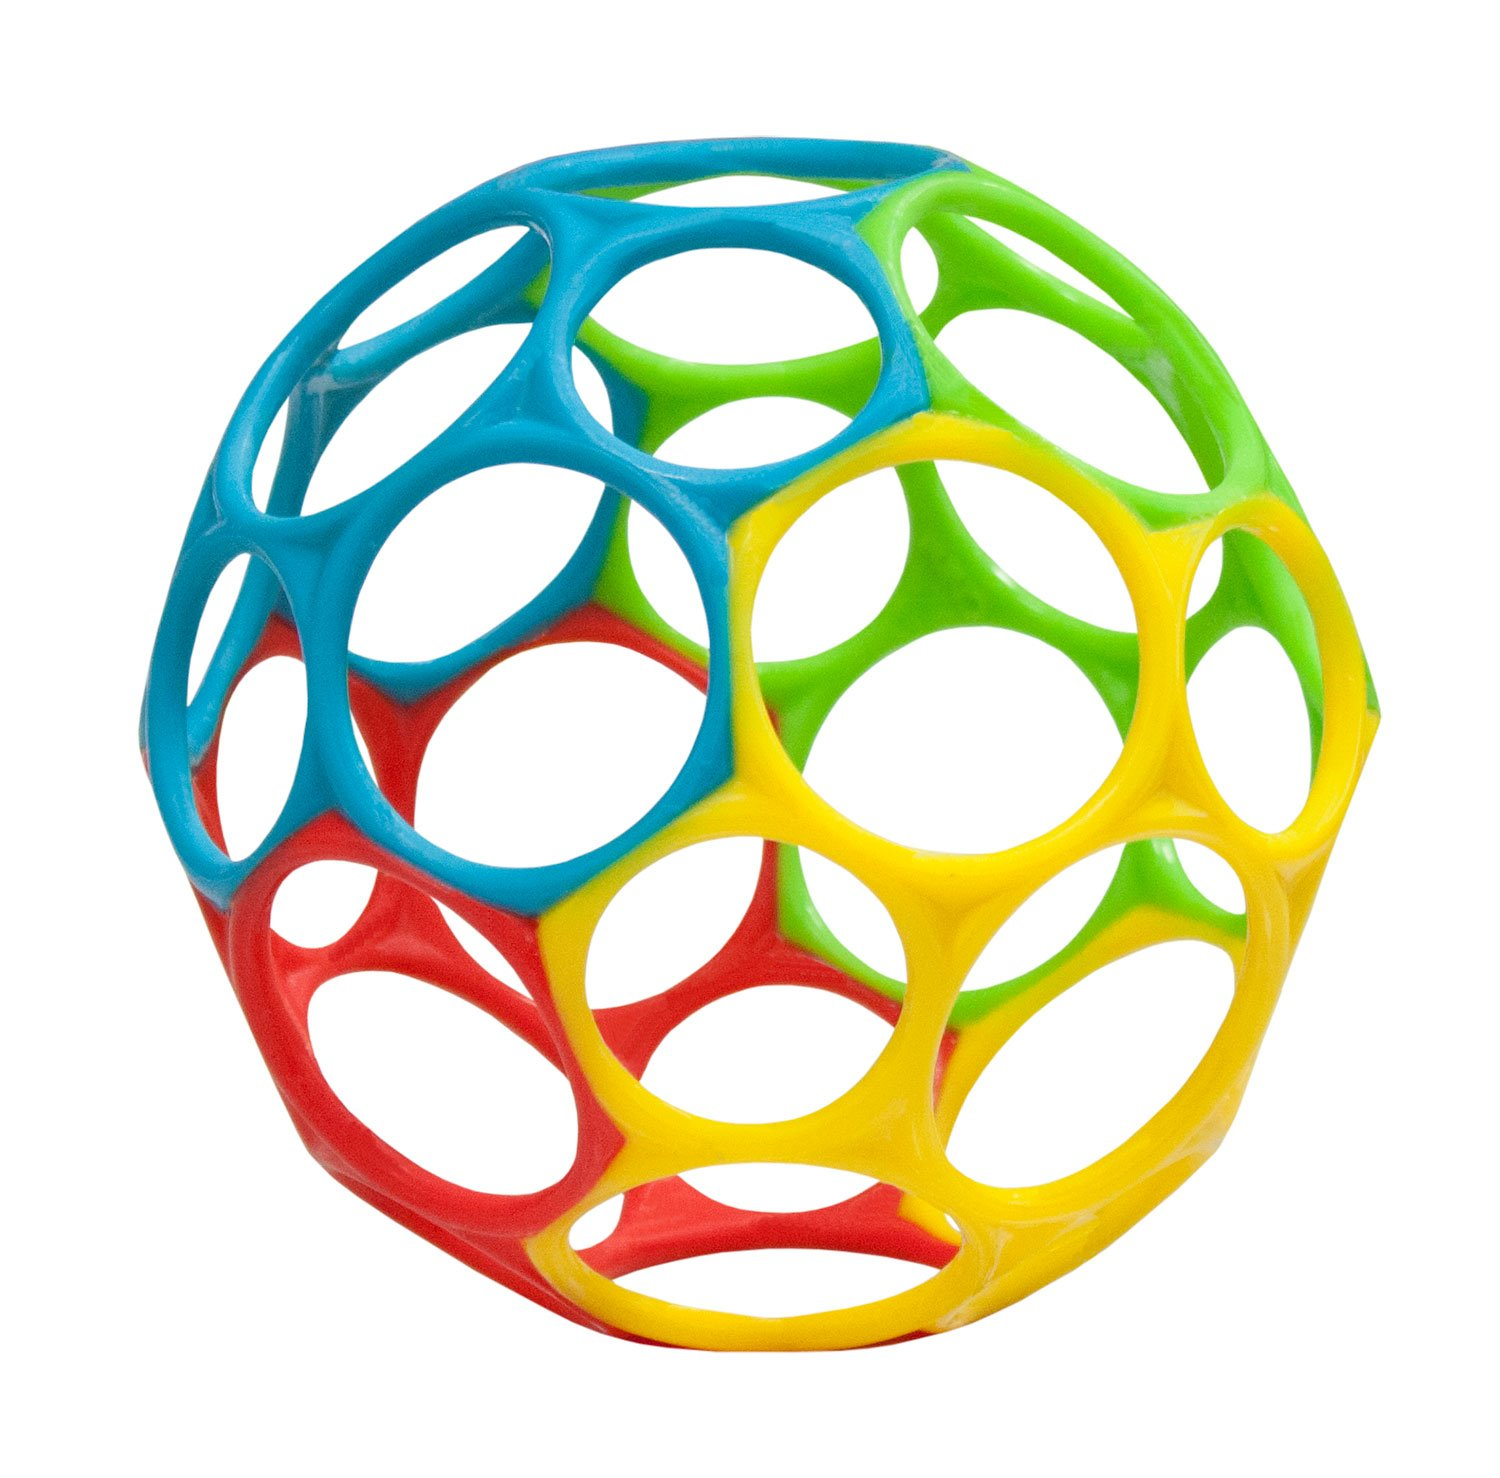 Rhino Toys 4-inch Oball (Colours May Vary) 1